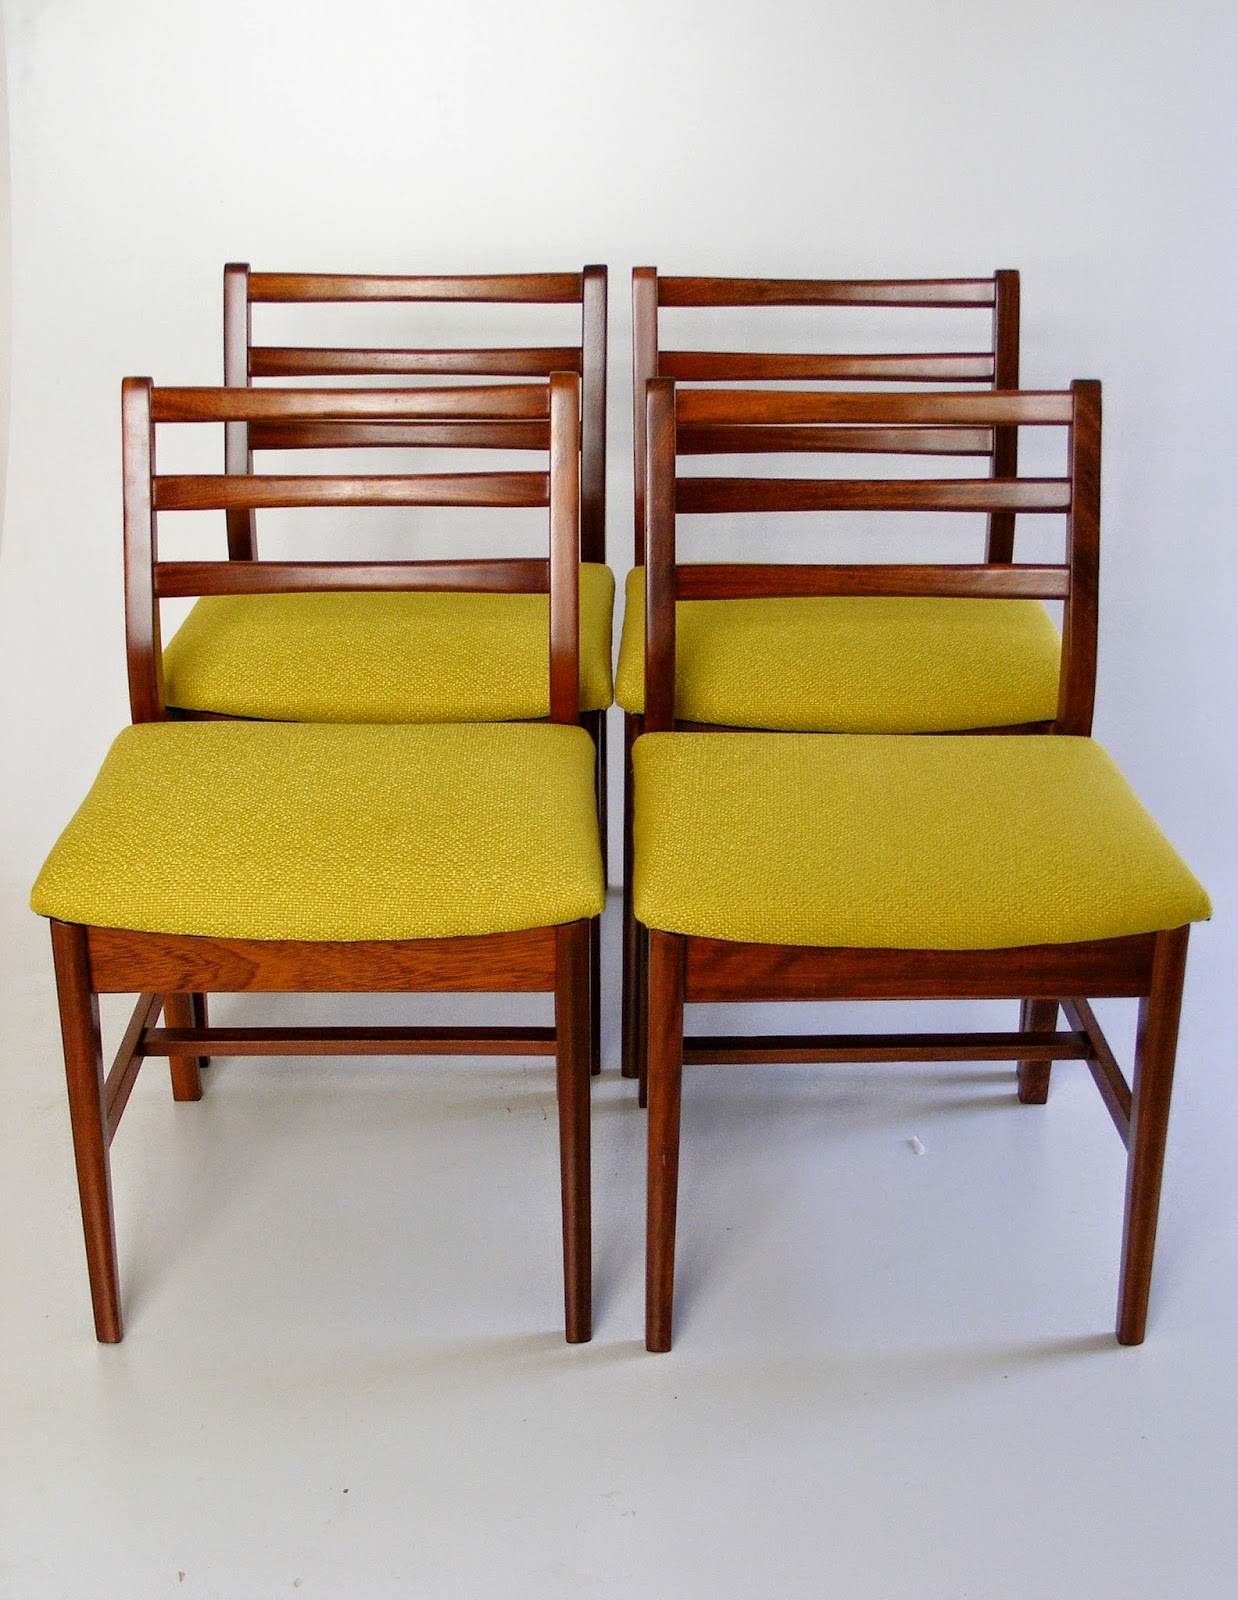 Vamp Furniture This Weeks New Vintage Furniture Stock Just Unpacked 20 February 2015